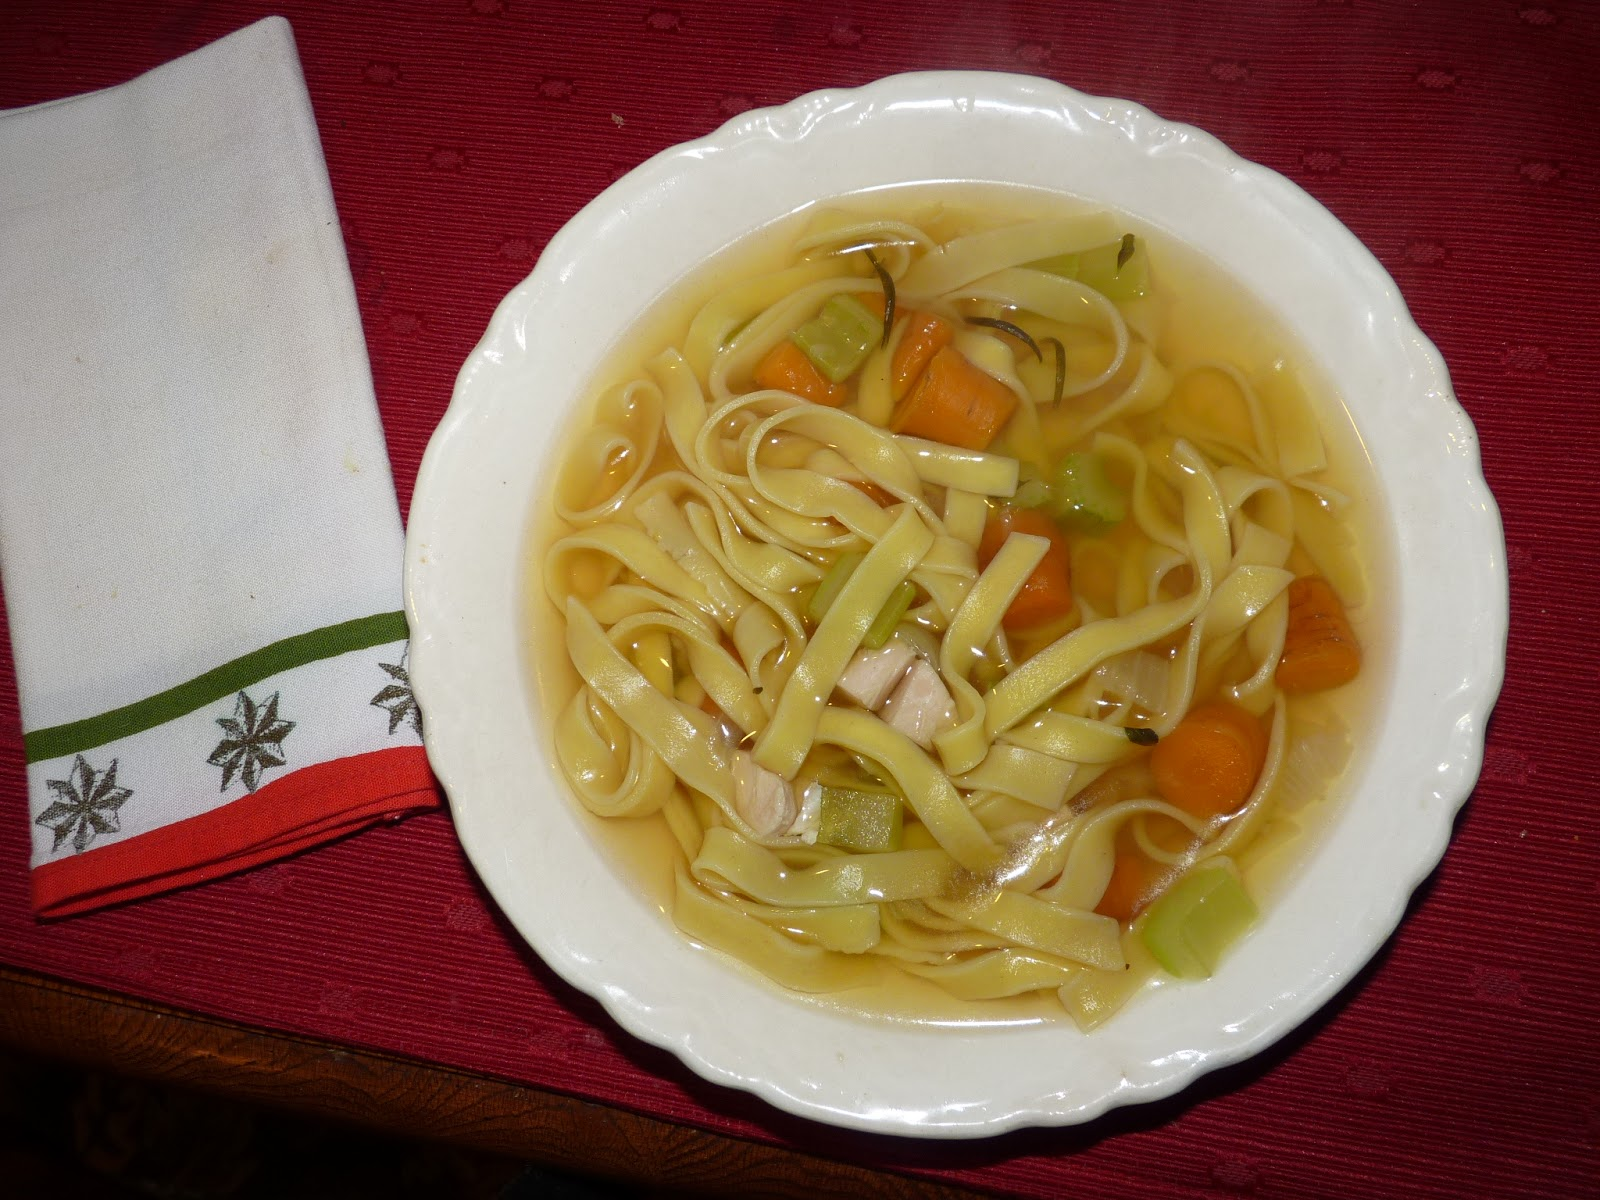 ... West Virginia Storyteller Granny Sue's Daily Blog: Soup for the Sick